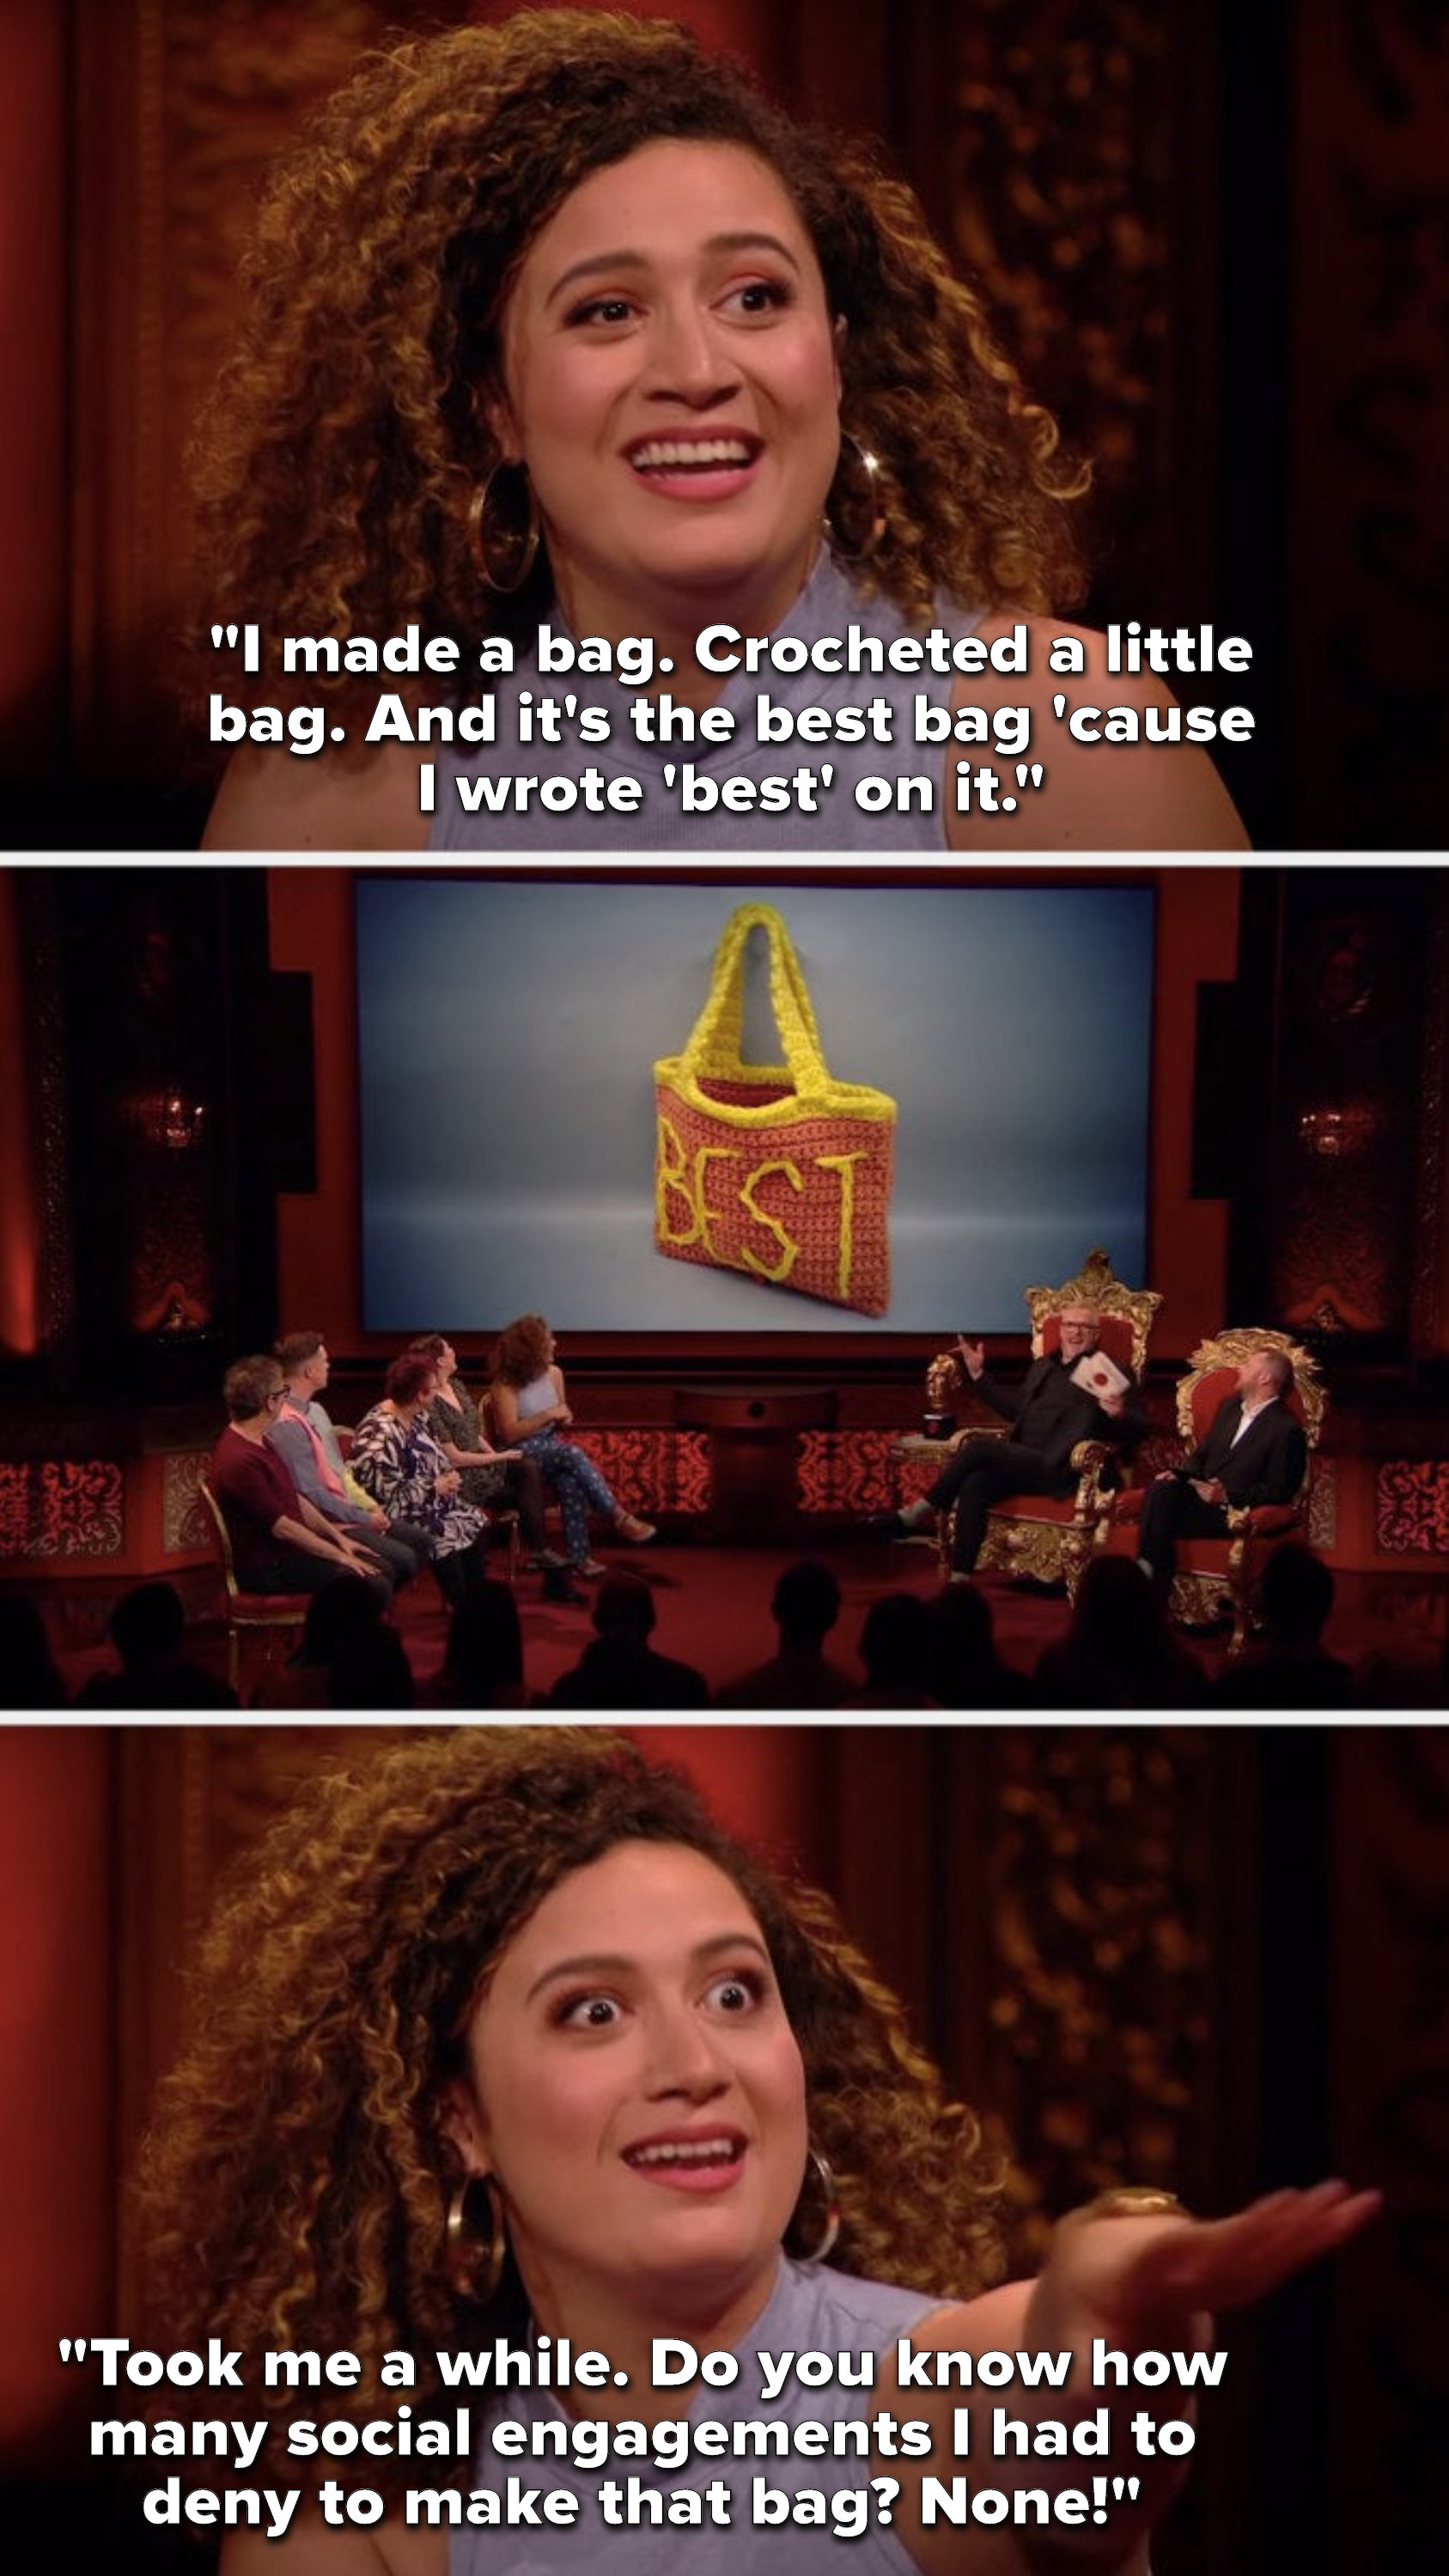 """Rose Matafeo says, """"I made a bag, crocheted a little bag, and it's the best bag 'cause I wrote 'best' on it, took me a while, do you know how many social engagements I had to deny to make that bag, none"""""""